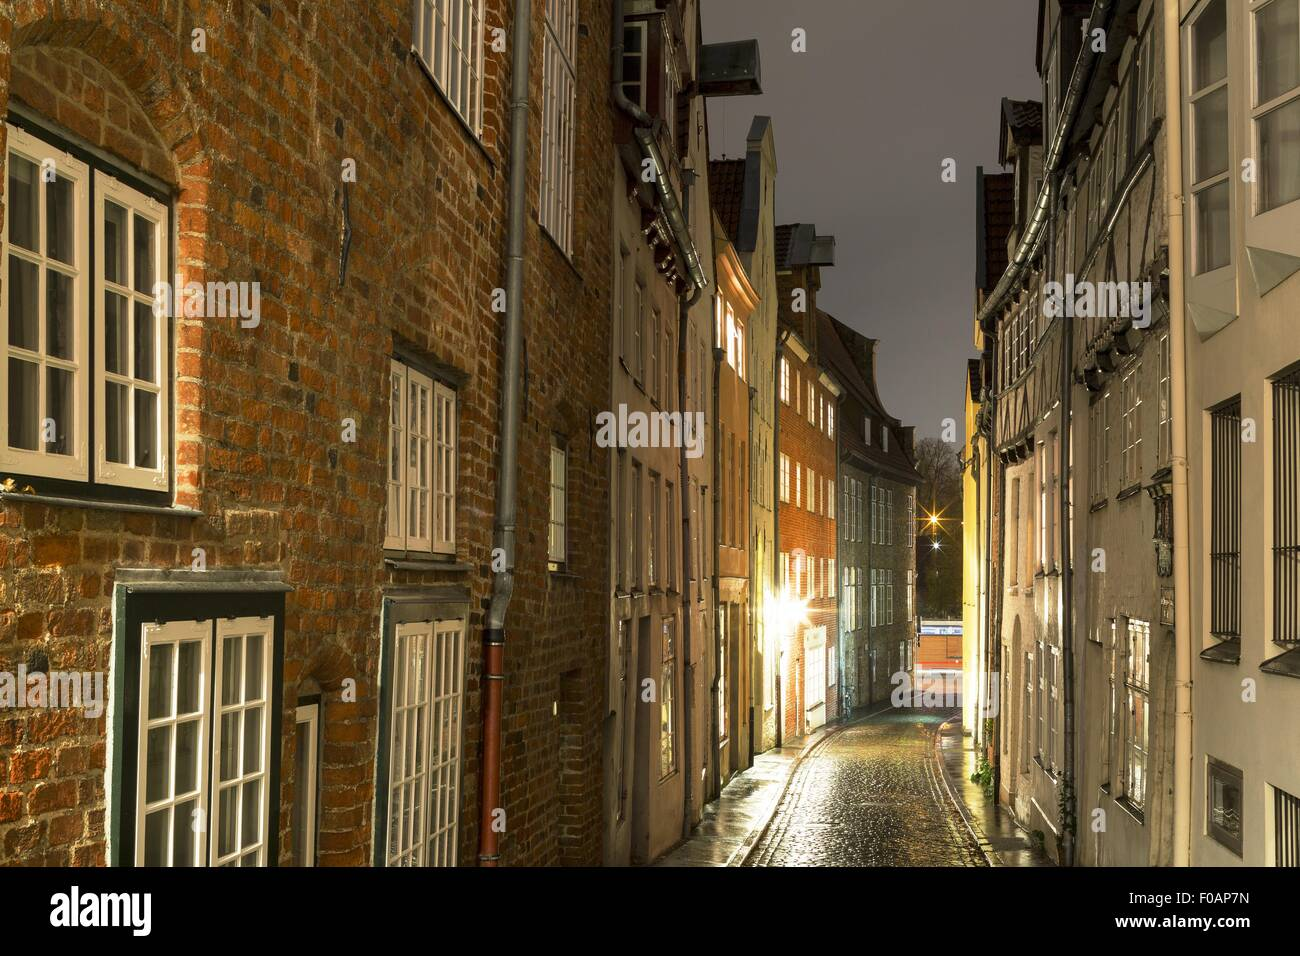 View of Great Peter Grube in evening at Lubeck, Schleswig Holstein, Germany - Stock Image